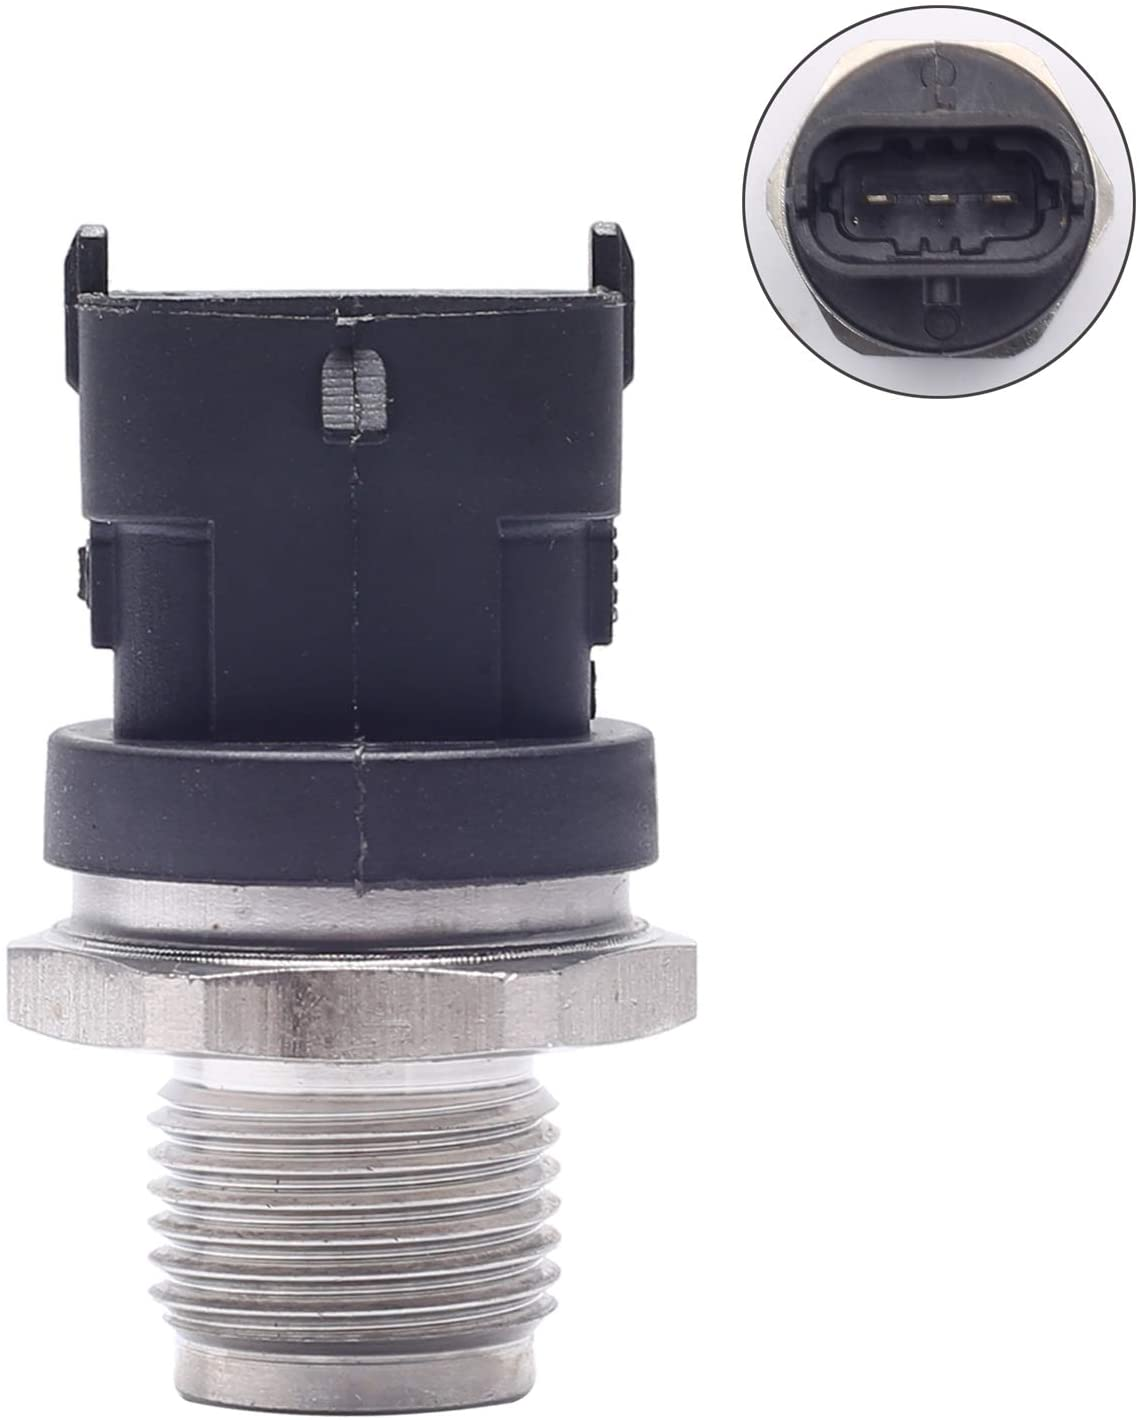 SEEU. AGAIN Fuel Rail Pressure Sensor, Part# 0281002937 Replacement For Dodge 2003-2006 Dodge Ram 3500, 2003-2007 Ram 2500 Cummins Diesel 5.9L - (45962072G,9S519G756AB, 1581708, 04216218,504152959)